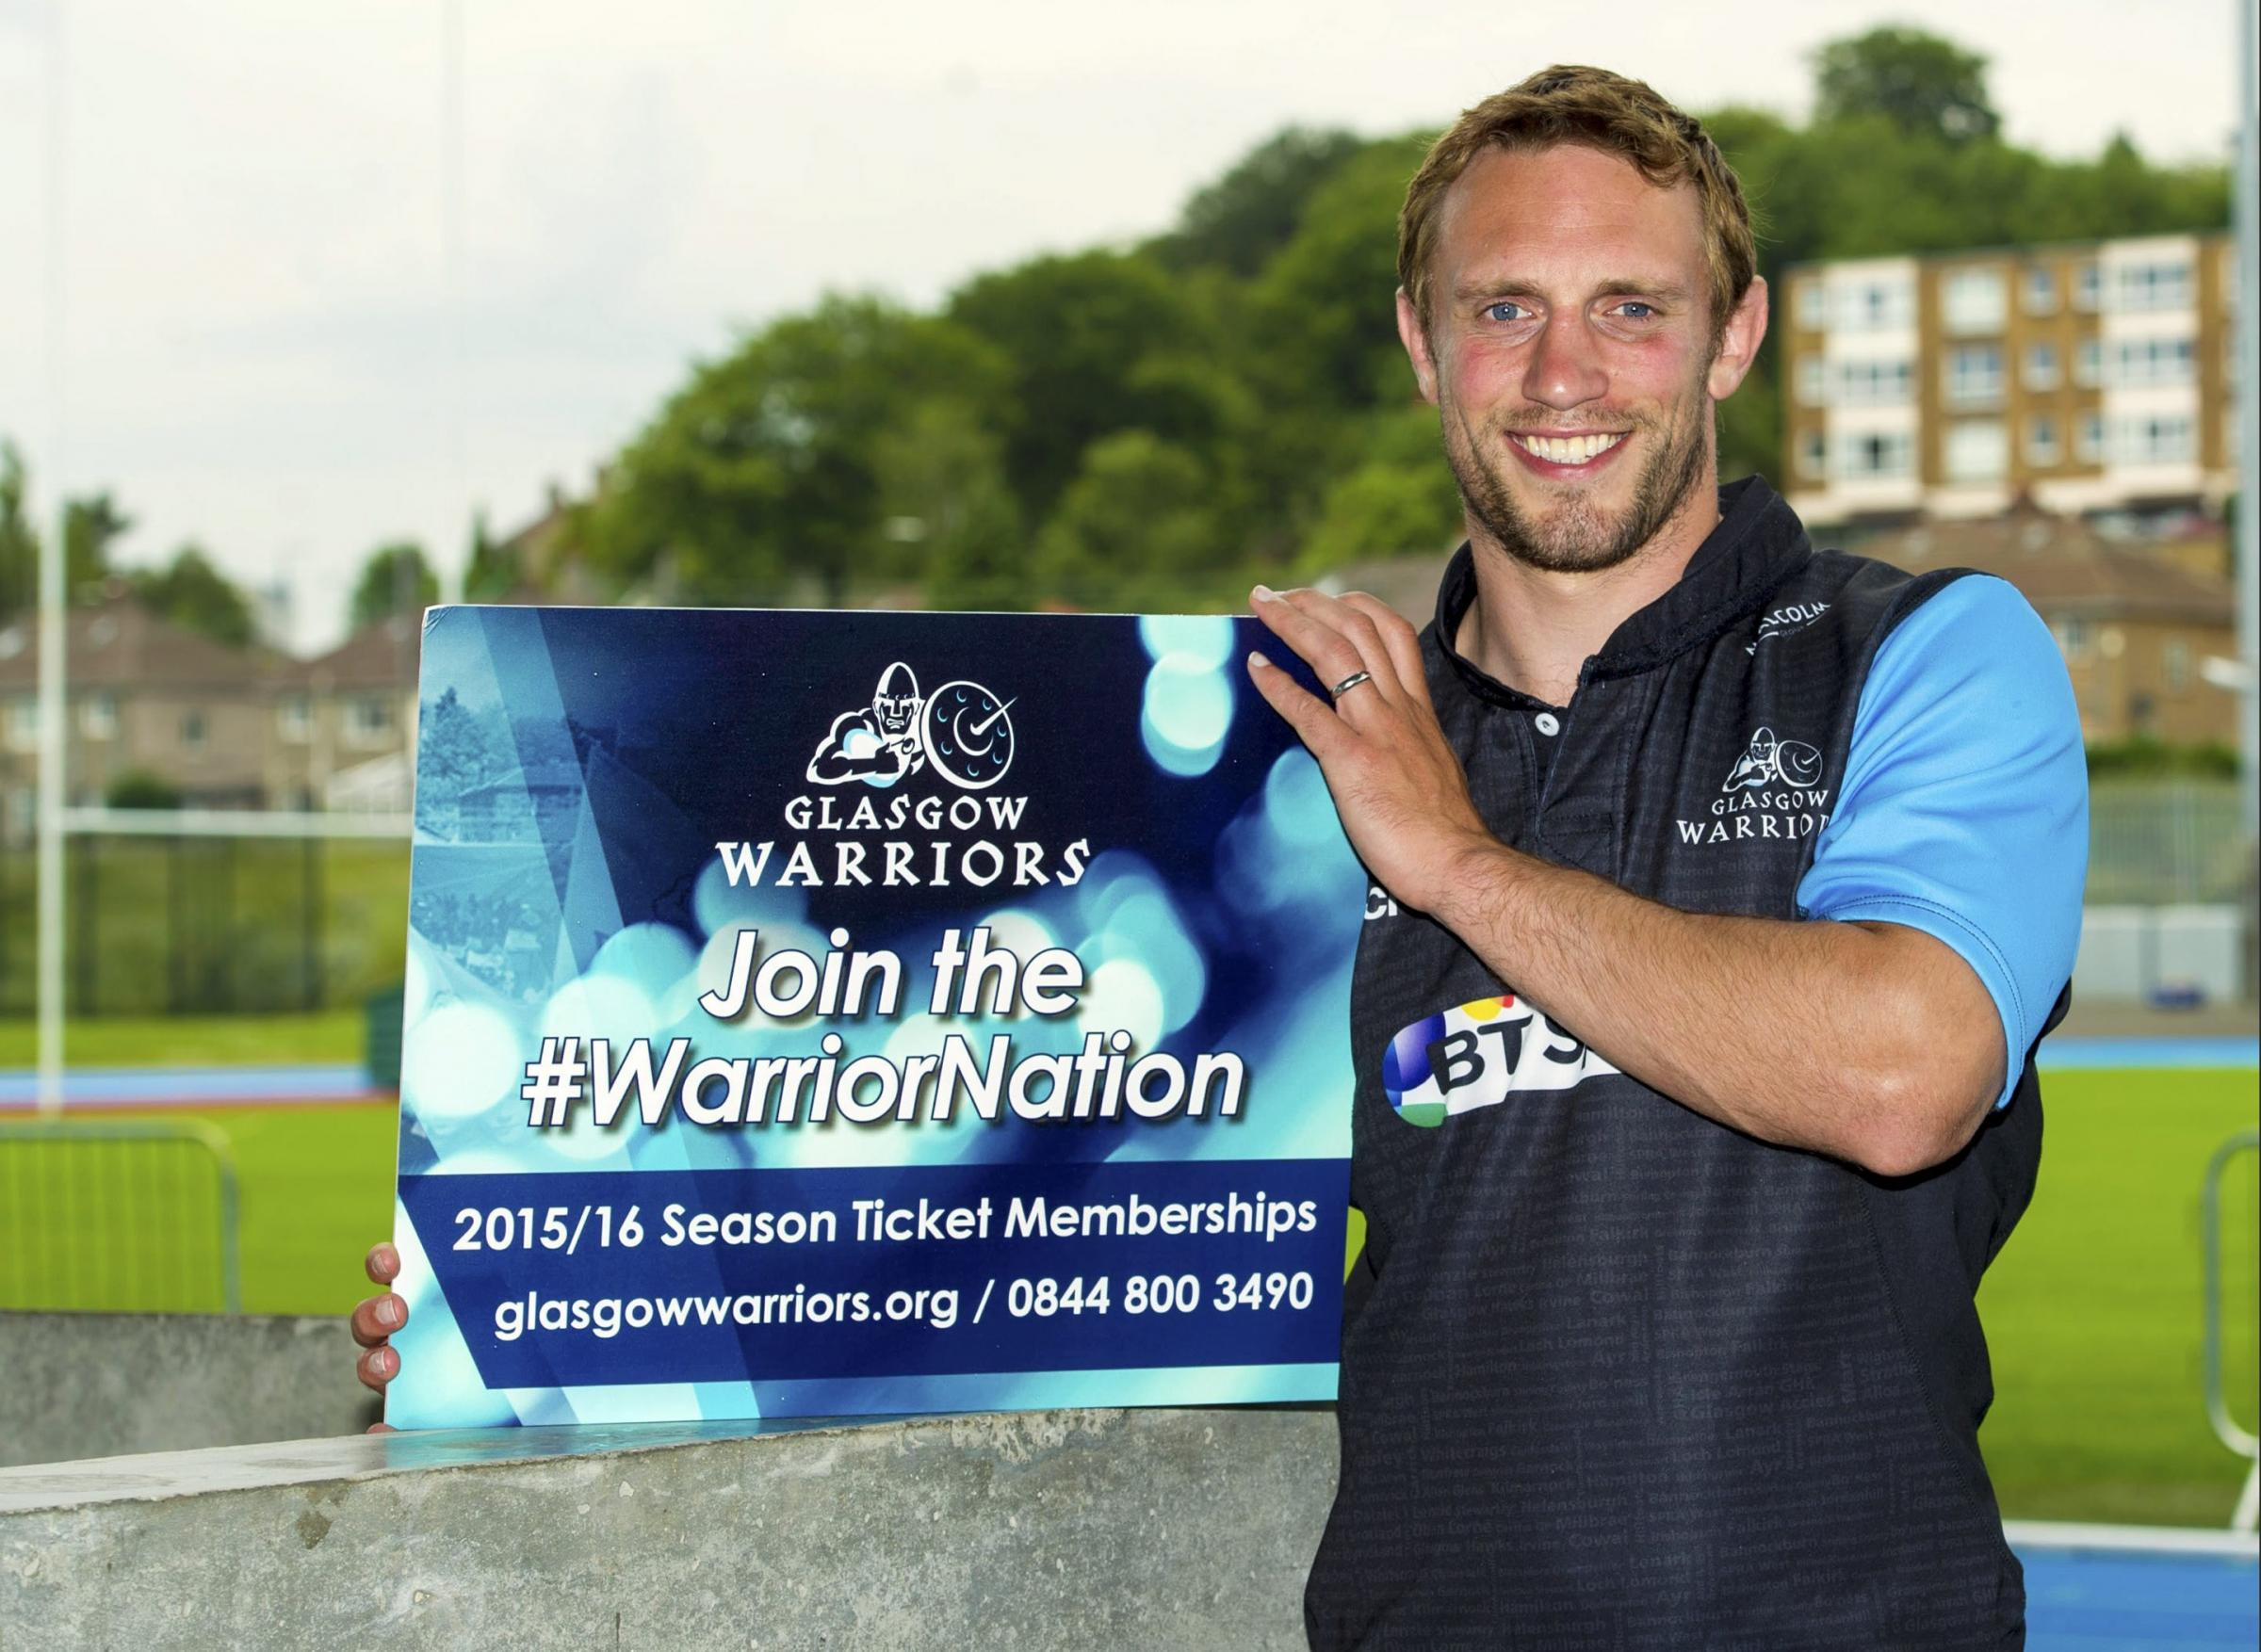 Glasgow Warriors star Mike Blair promotes the 2015/2016 season ticket membership, which has now reached 3,200